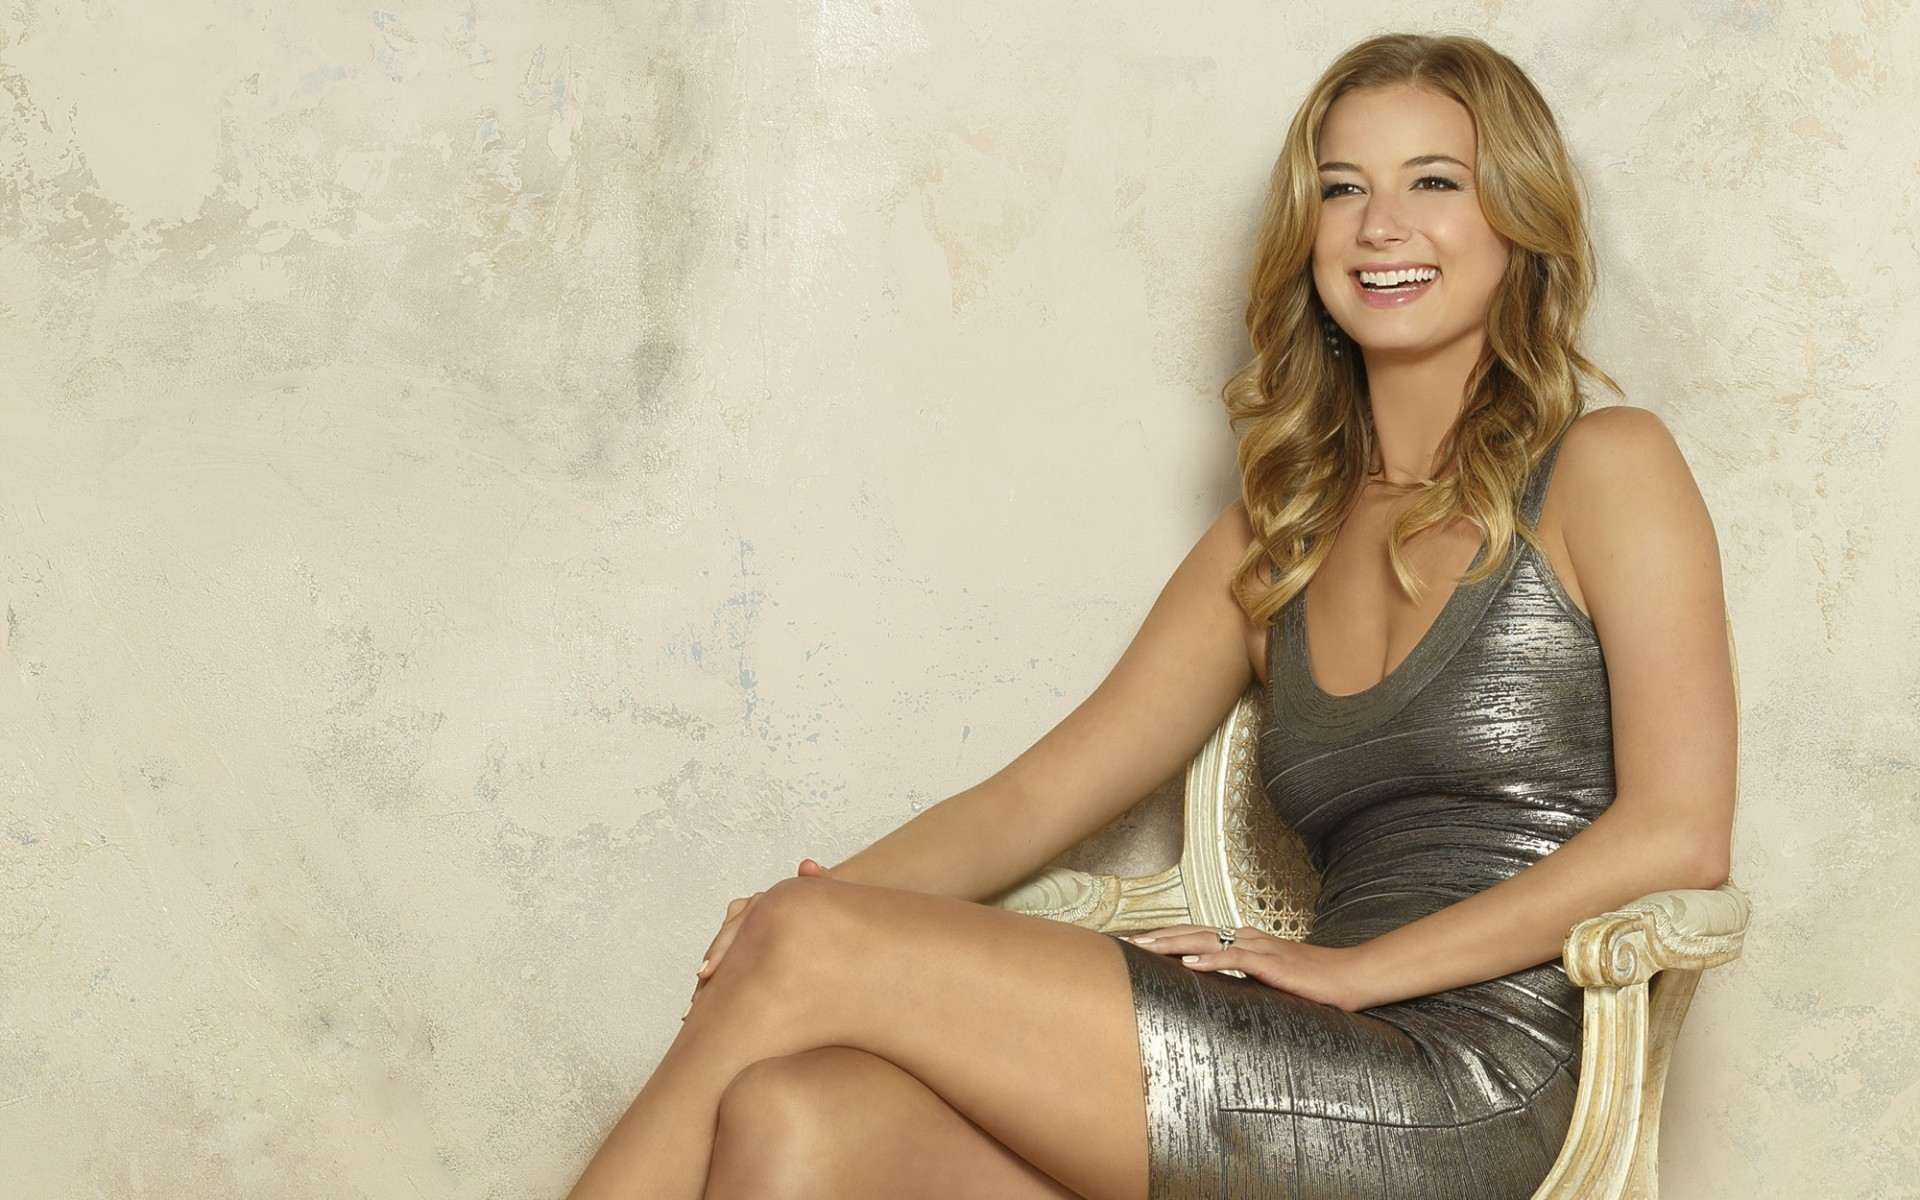 emily vancamp smile wallpaper 50312